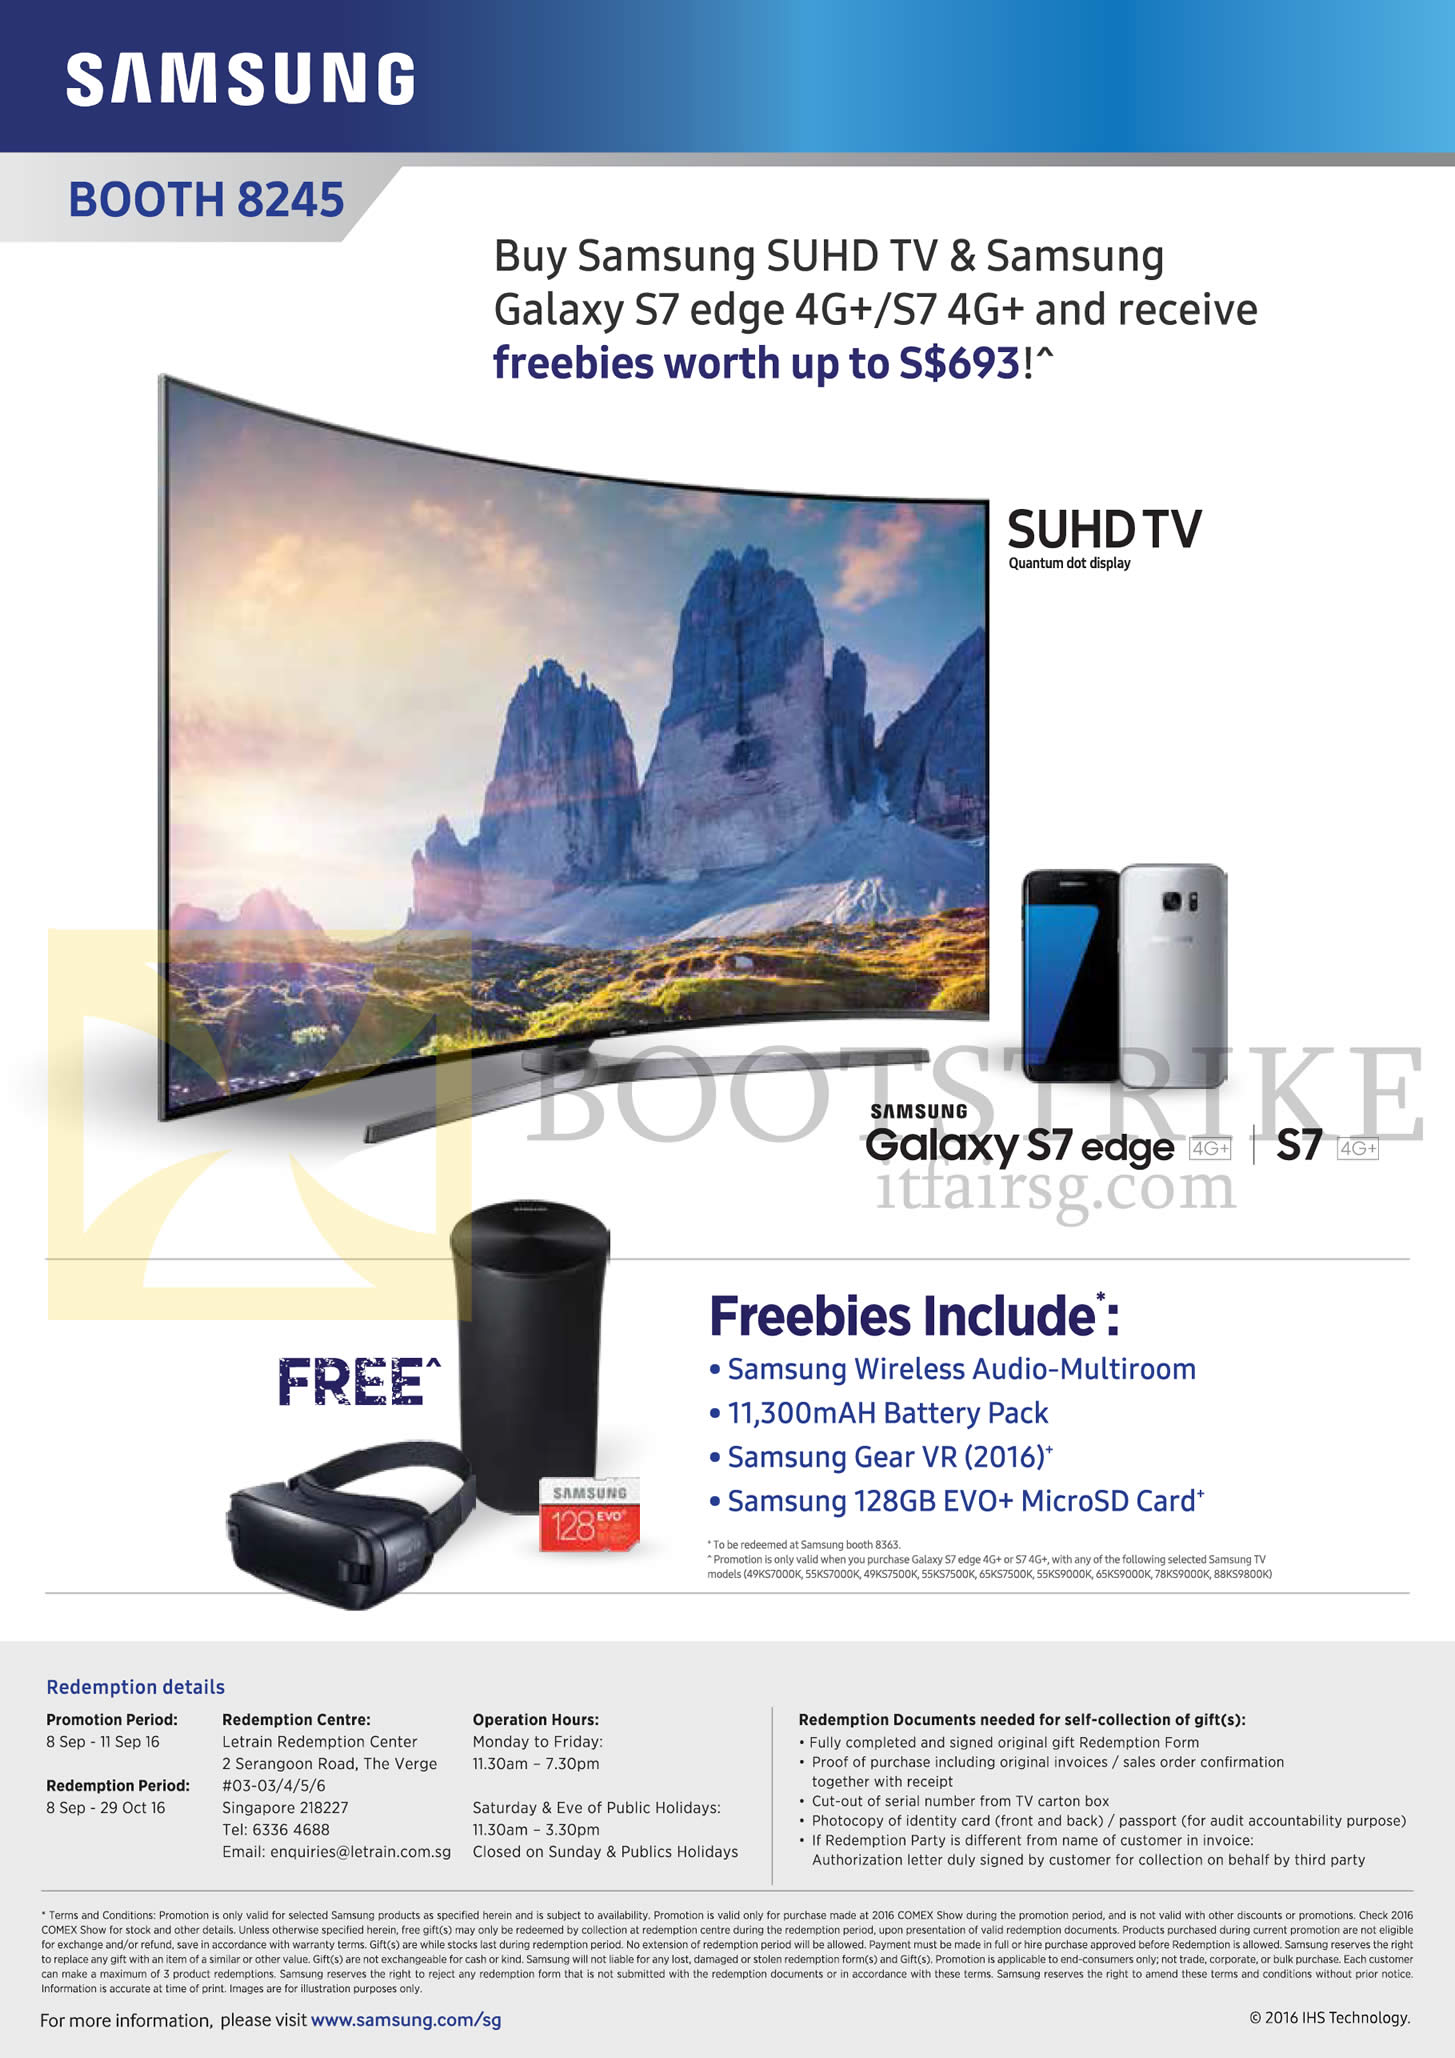 COMEX 2016 price list image brochure of Samsung TV (No Prices) Galaxy S7 Edge, Free Items With Purchase